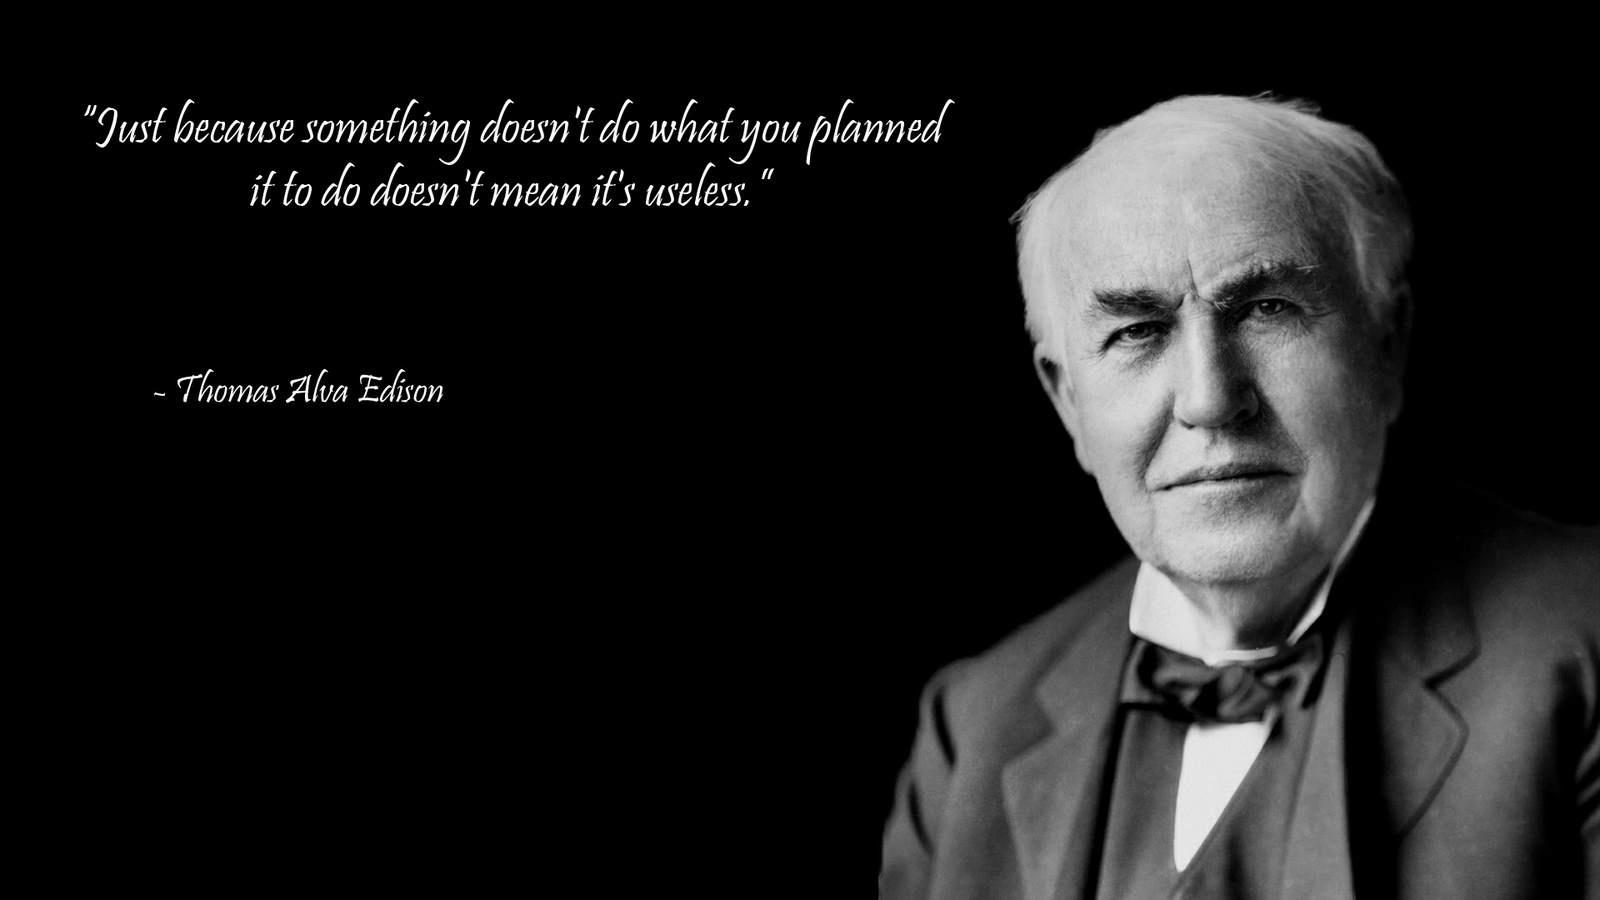 thomas-edison-lightbulb-quote-thomas-edison-quotes---viewing-gallery-image